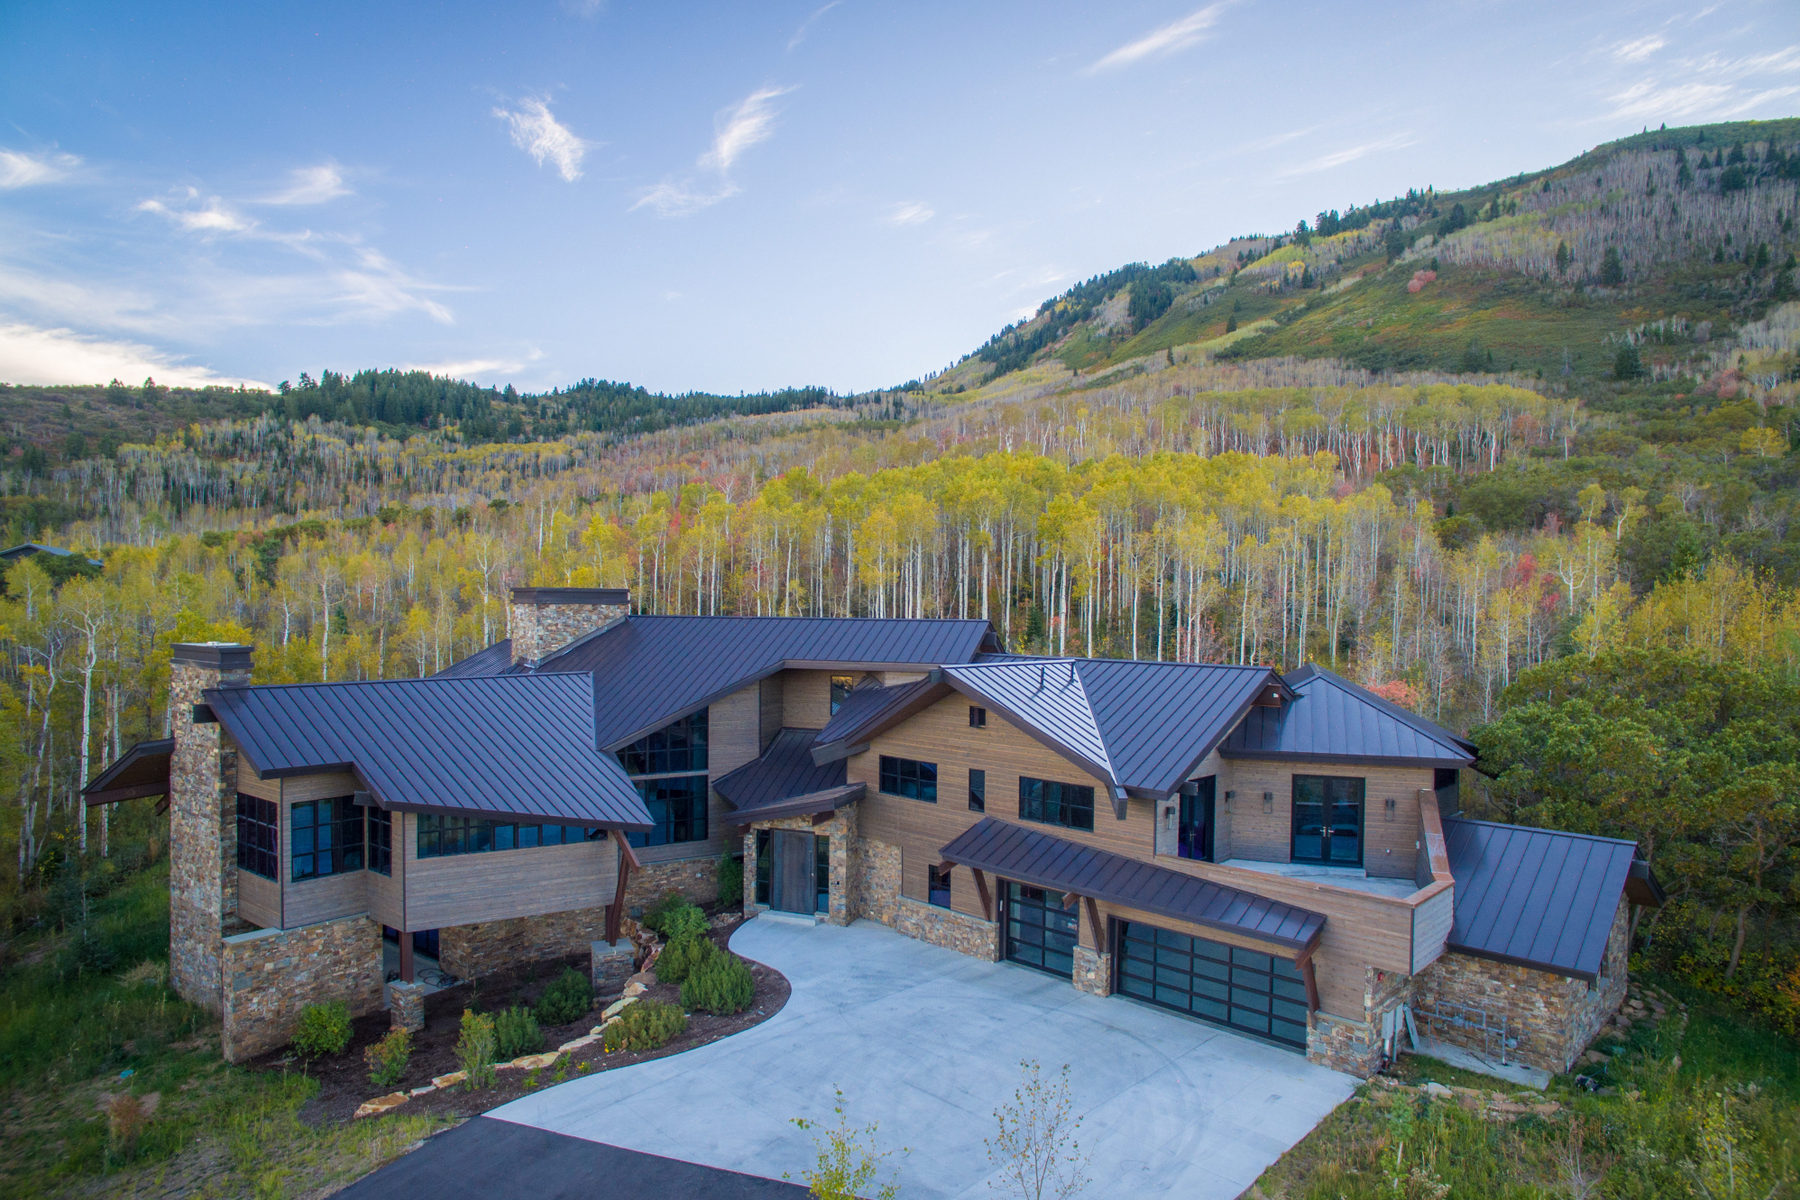 Single Family Home for Sale at Newly Finished Mountain Contemporary Masterpiece 21 Canyon Ct Park City, Utah 84060 United States